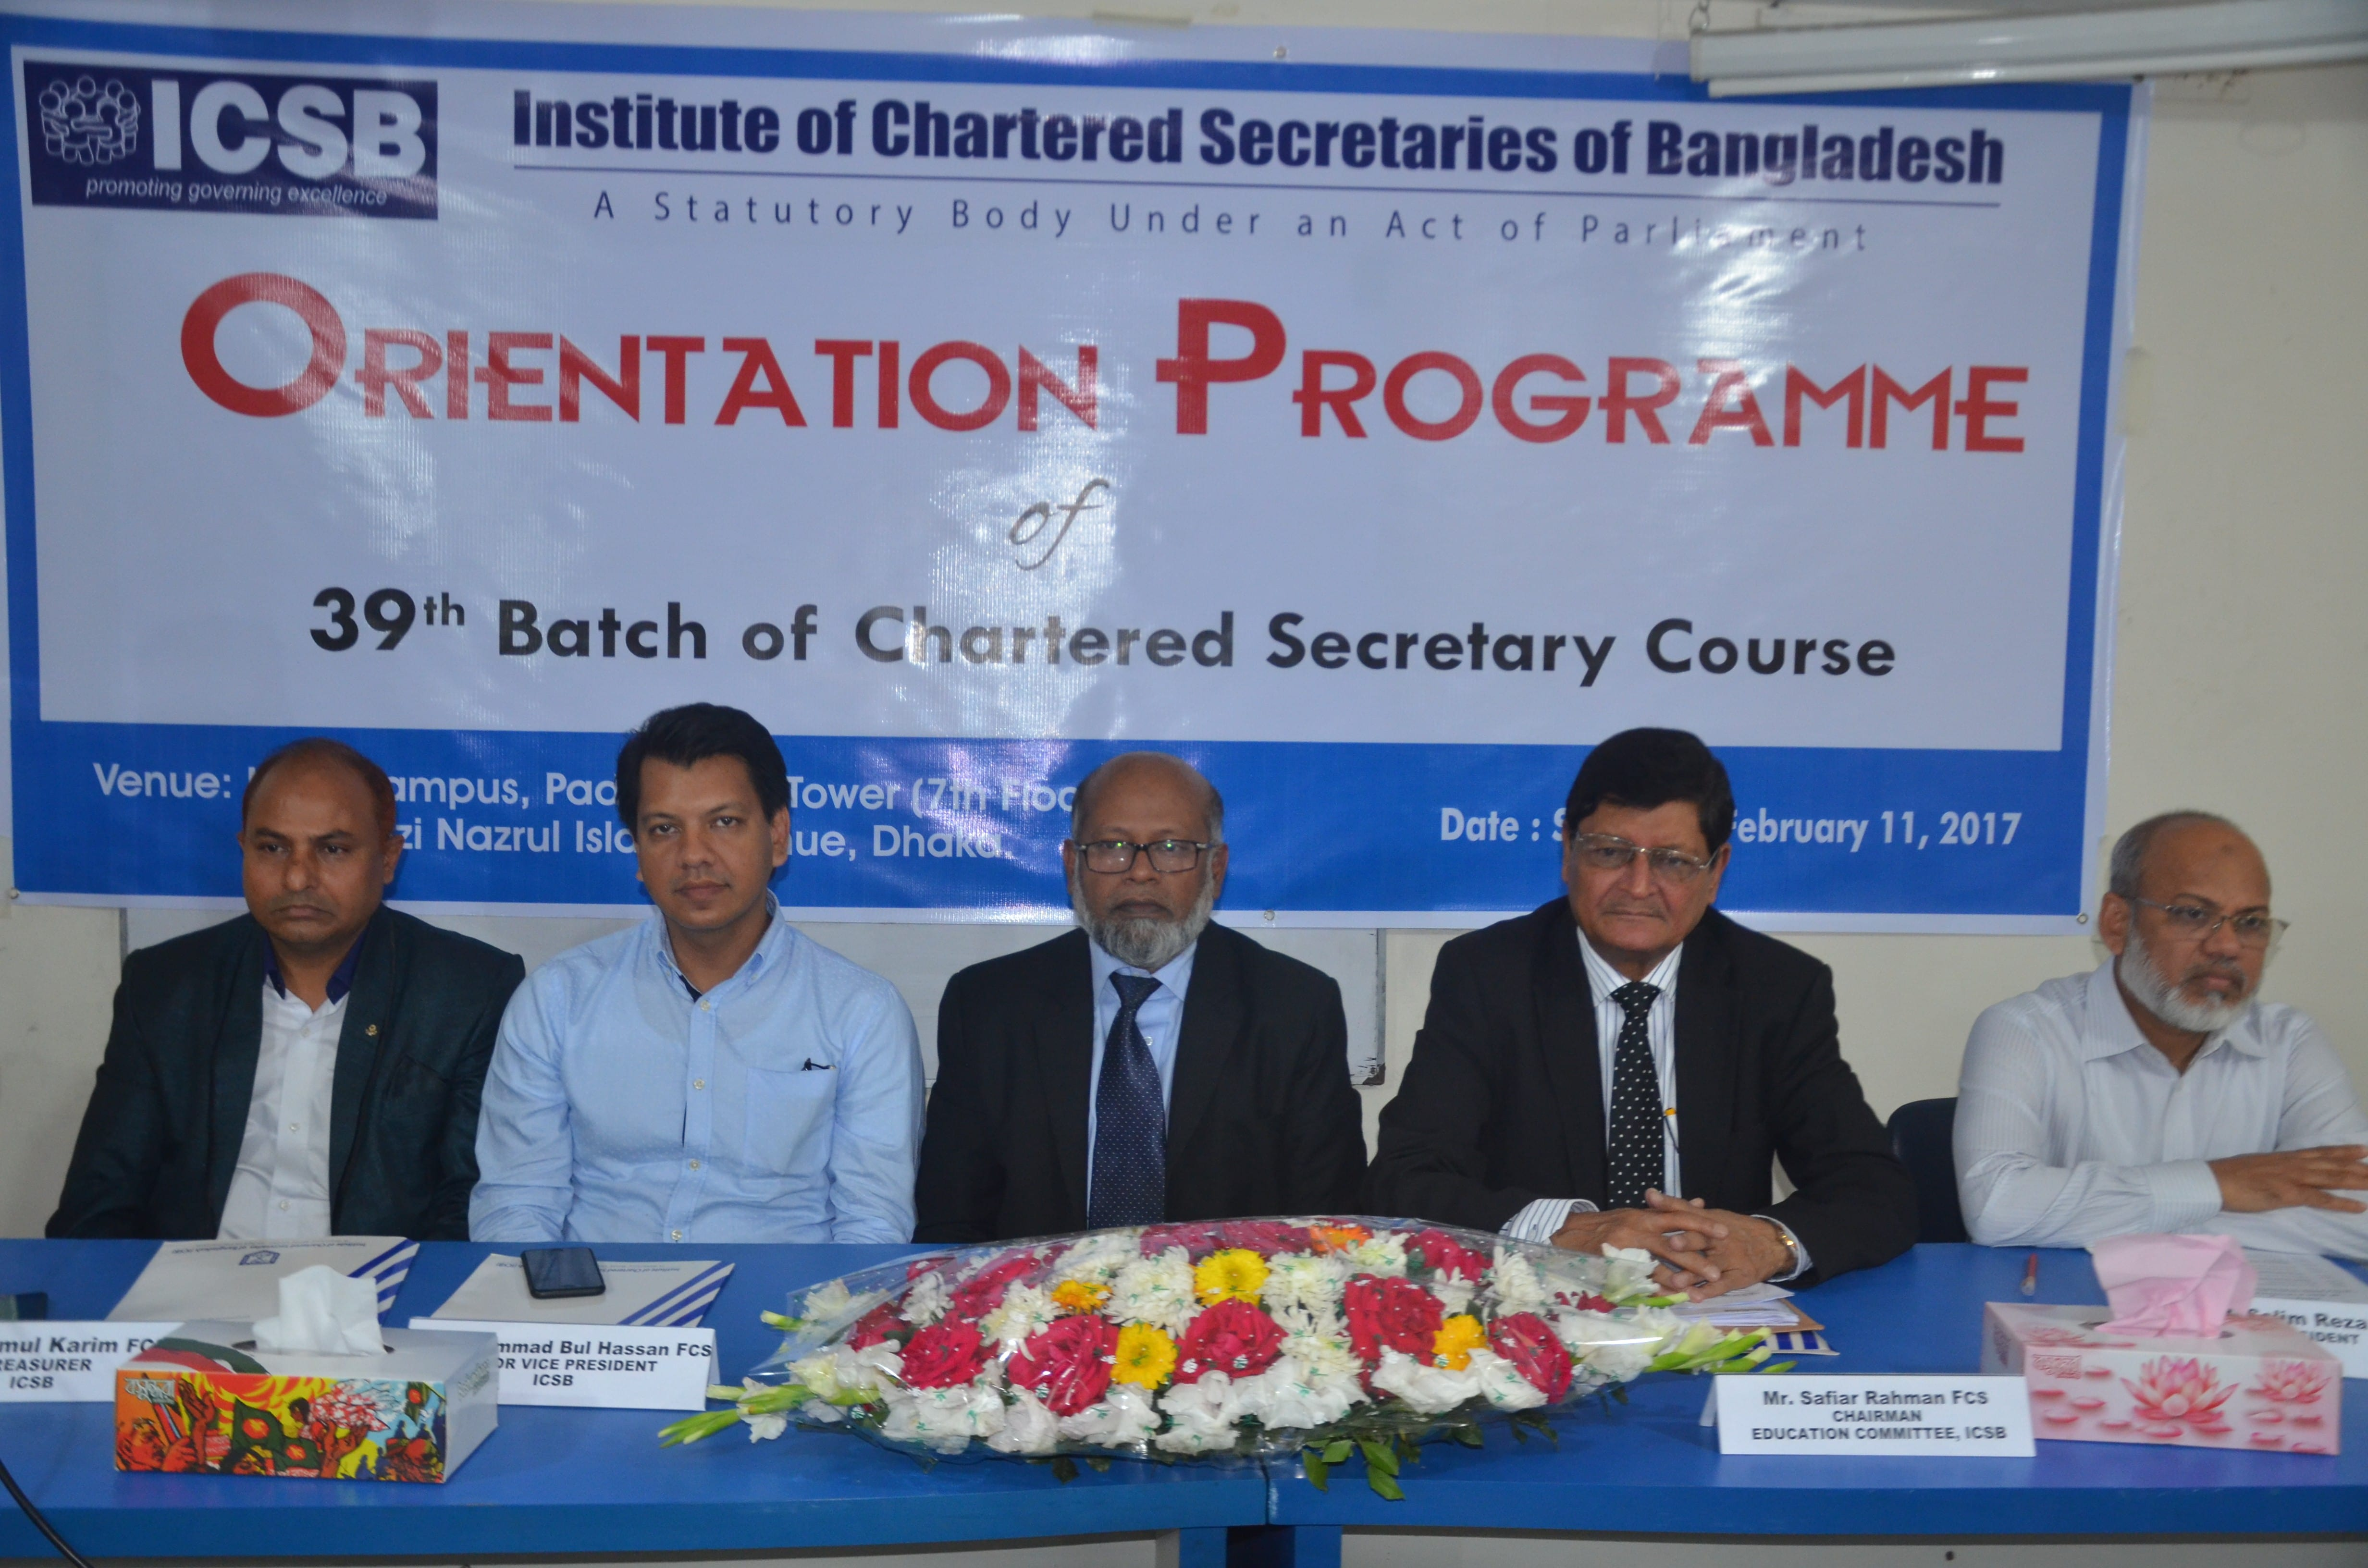 Orientation Programme of 39th Batch of Chartered Secretary Course of ICSB held on